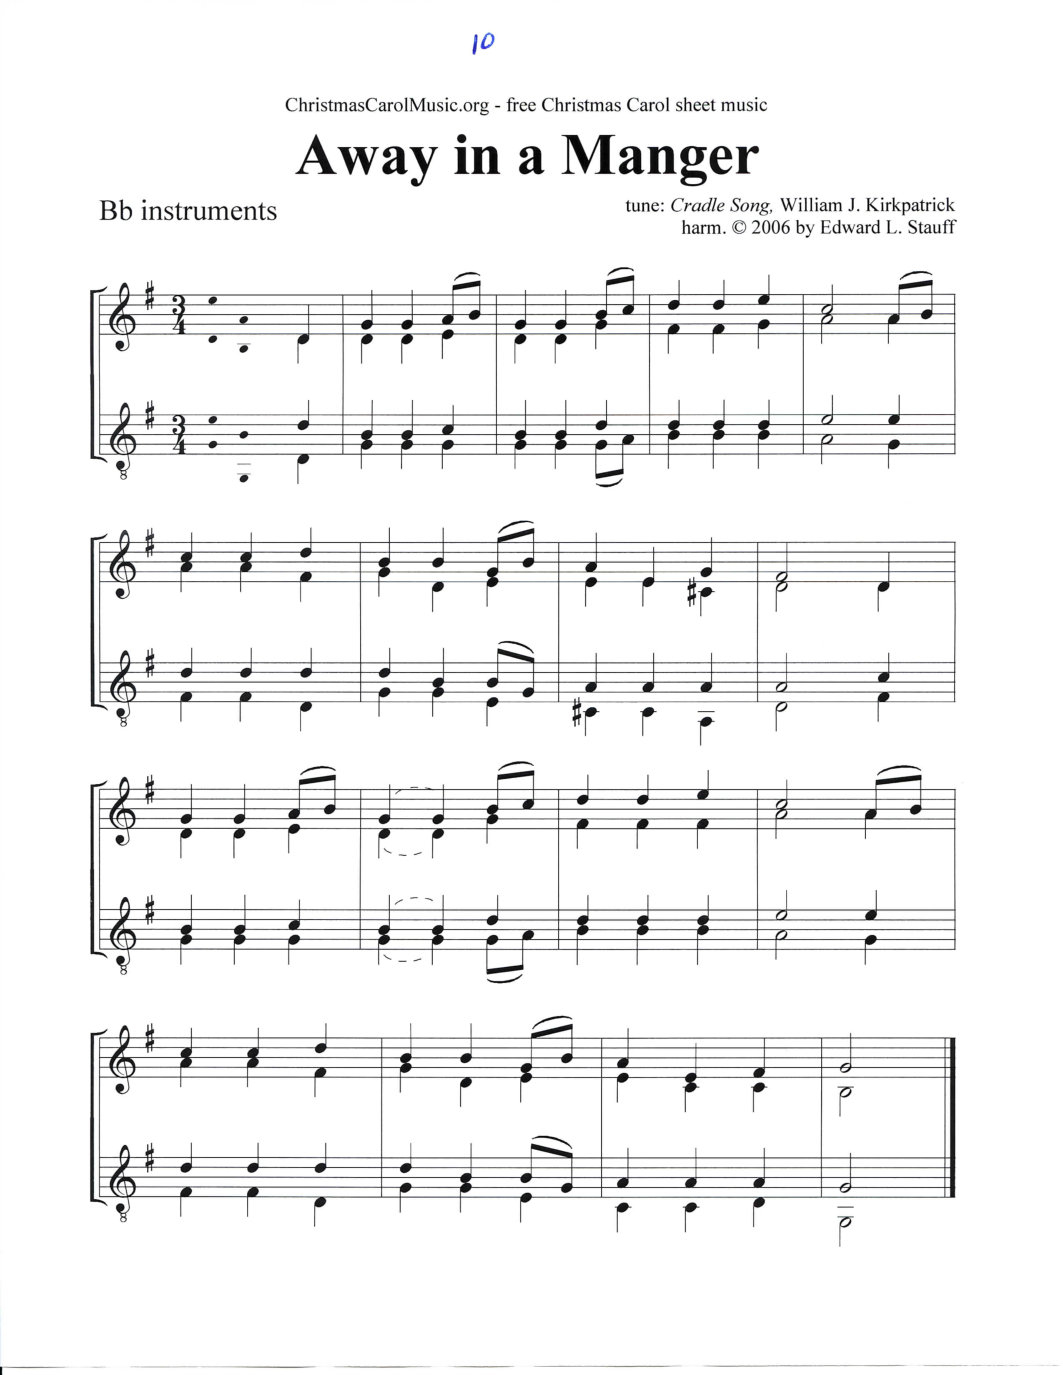 A Christmas Eve Songbook Sheet Music FREE Printable for